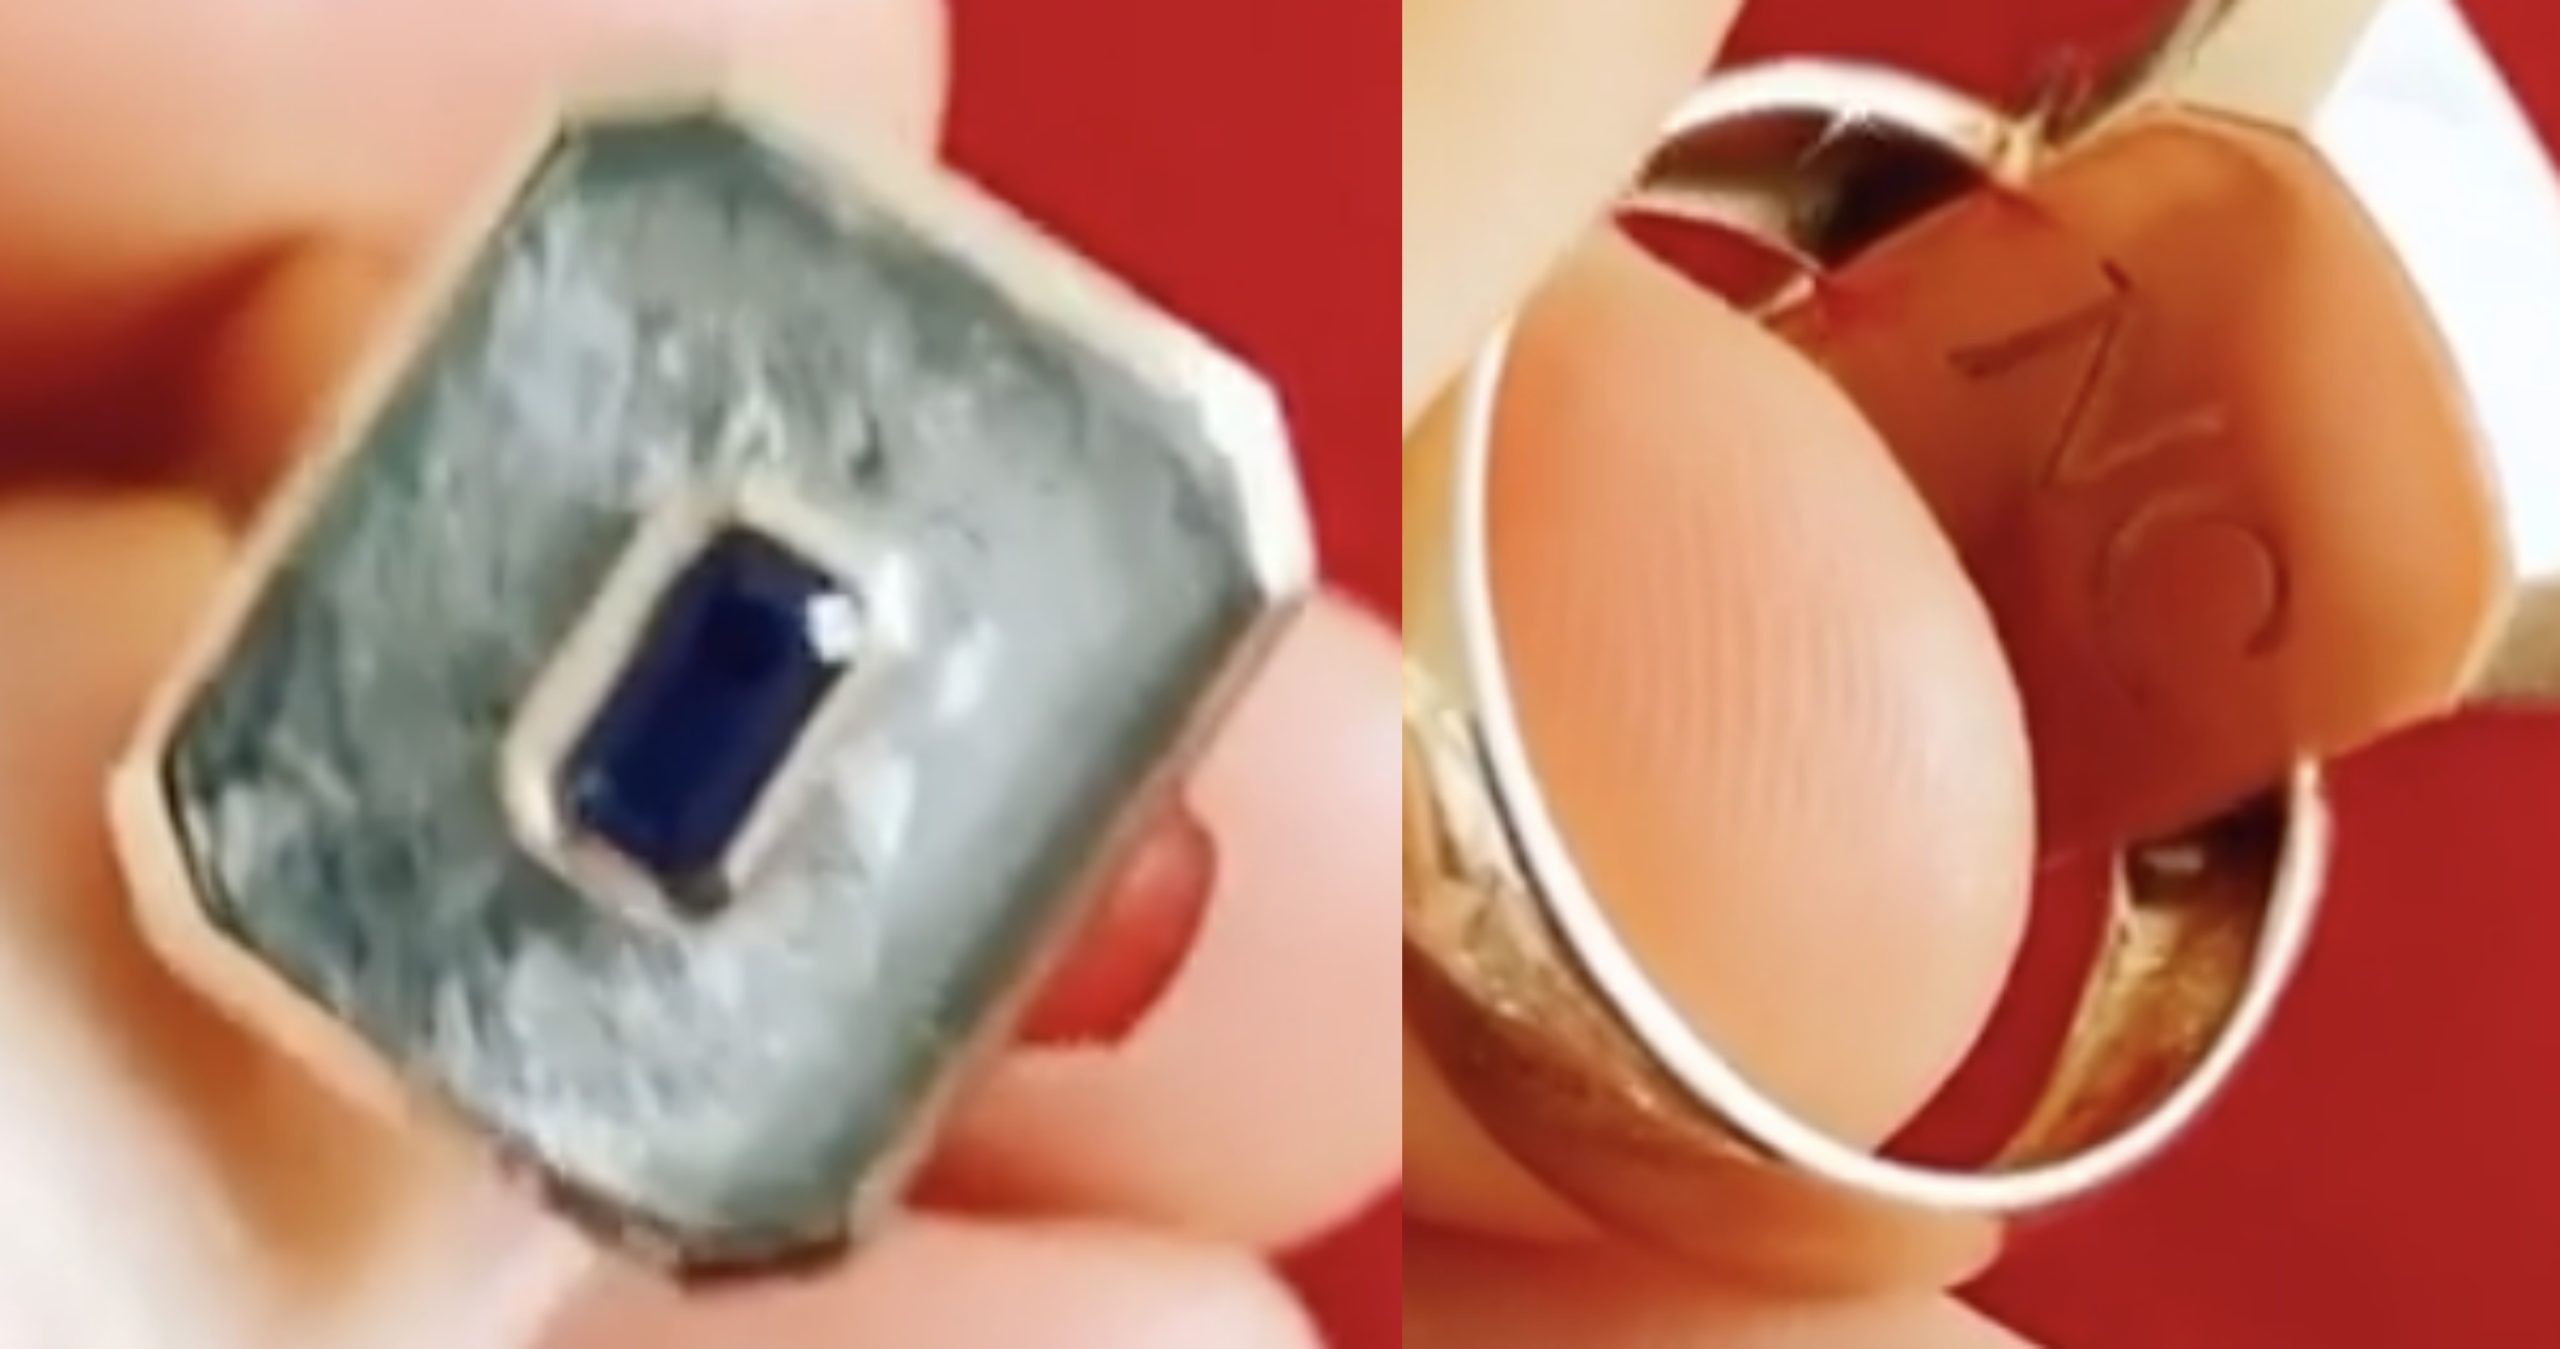 Amanda Kloots Shares New Ring Made With Late Husband Nick Cordero's Ashes